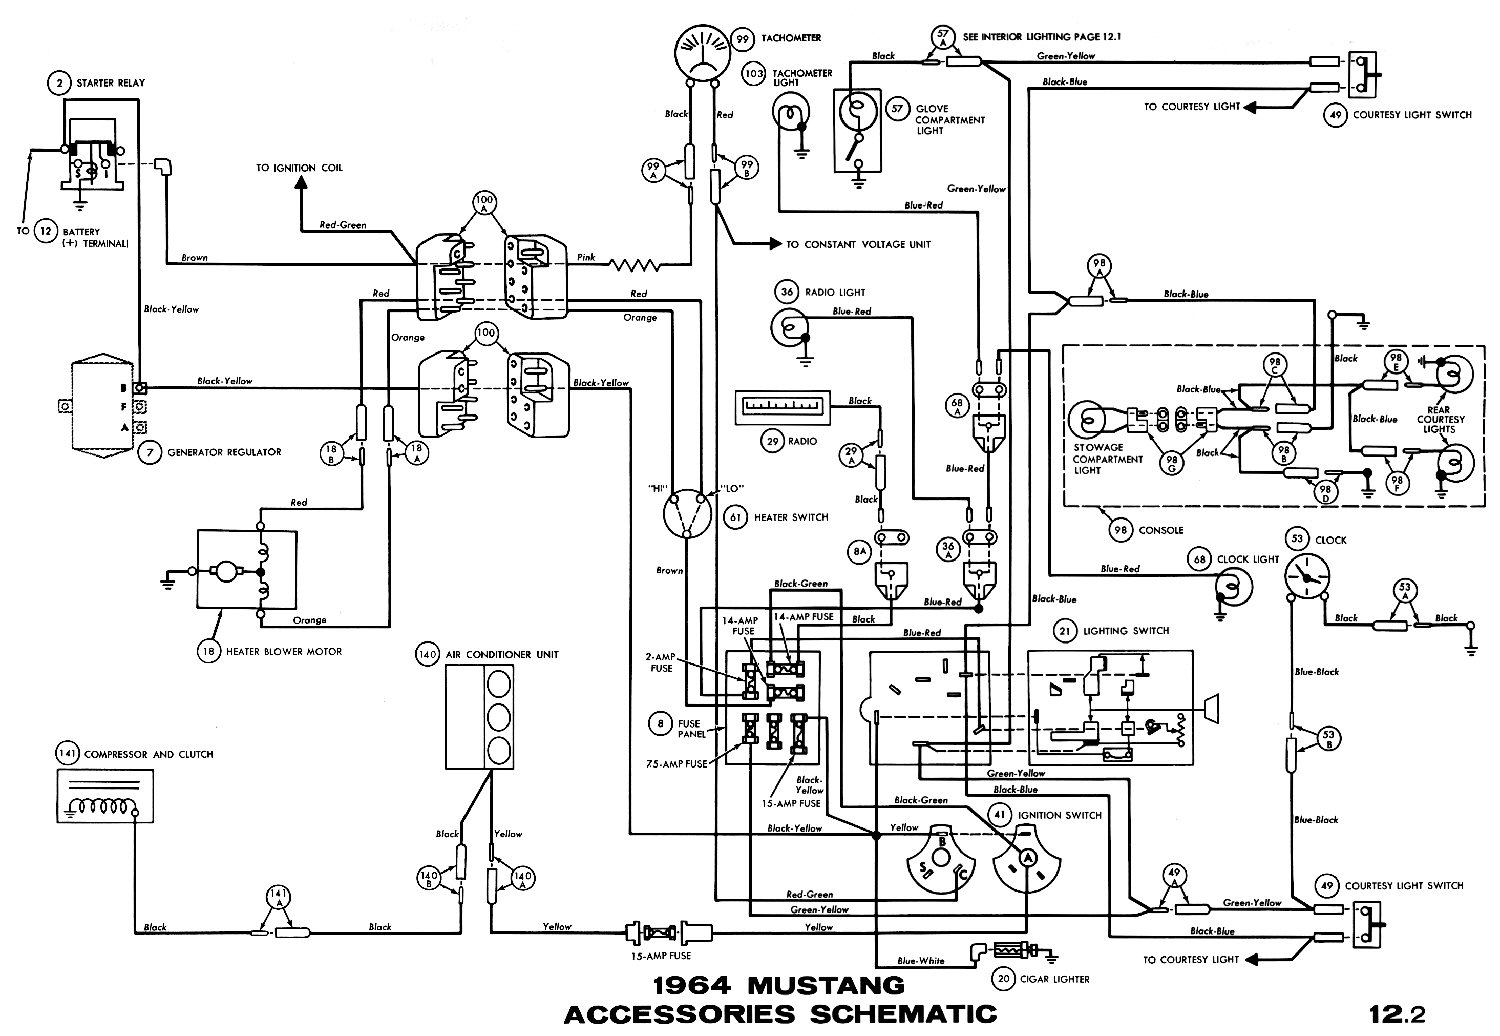 1965 mustang ignition wiring diagram Collection-2012 Mustang Fuse Box Diagram Unique 2007 ford Mustang Wiring Diagram Wiring Diagram 8-g